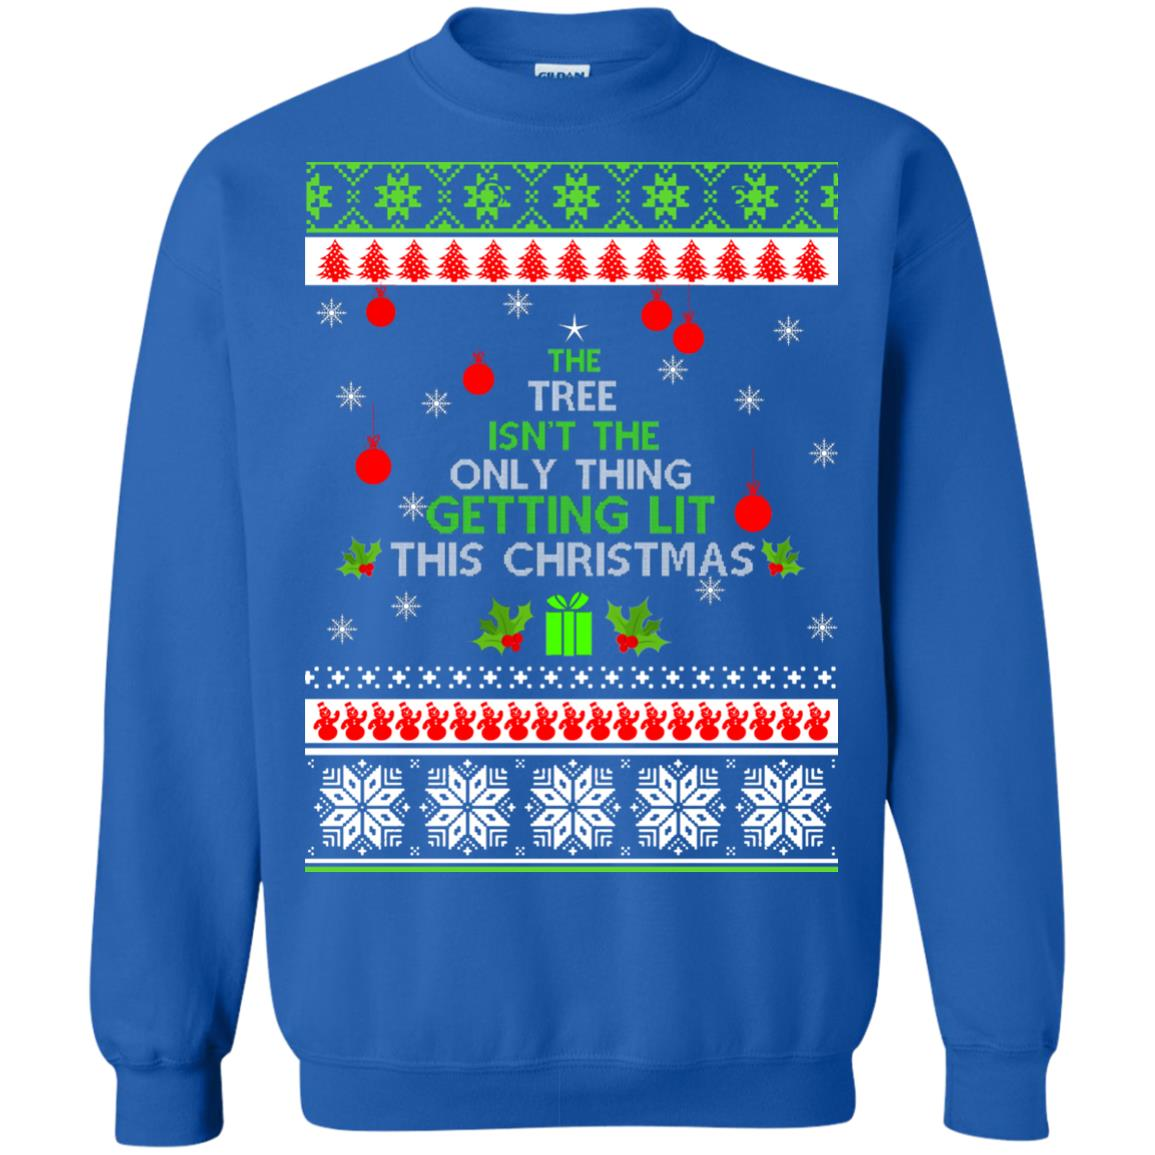 image 5573 - The Tree Isn't The Only Thing Getting Lit This Christmas Sweater, Long Sleeve